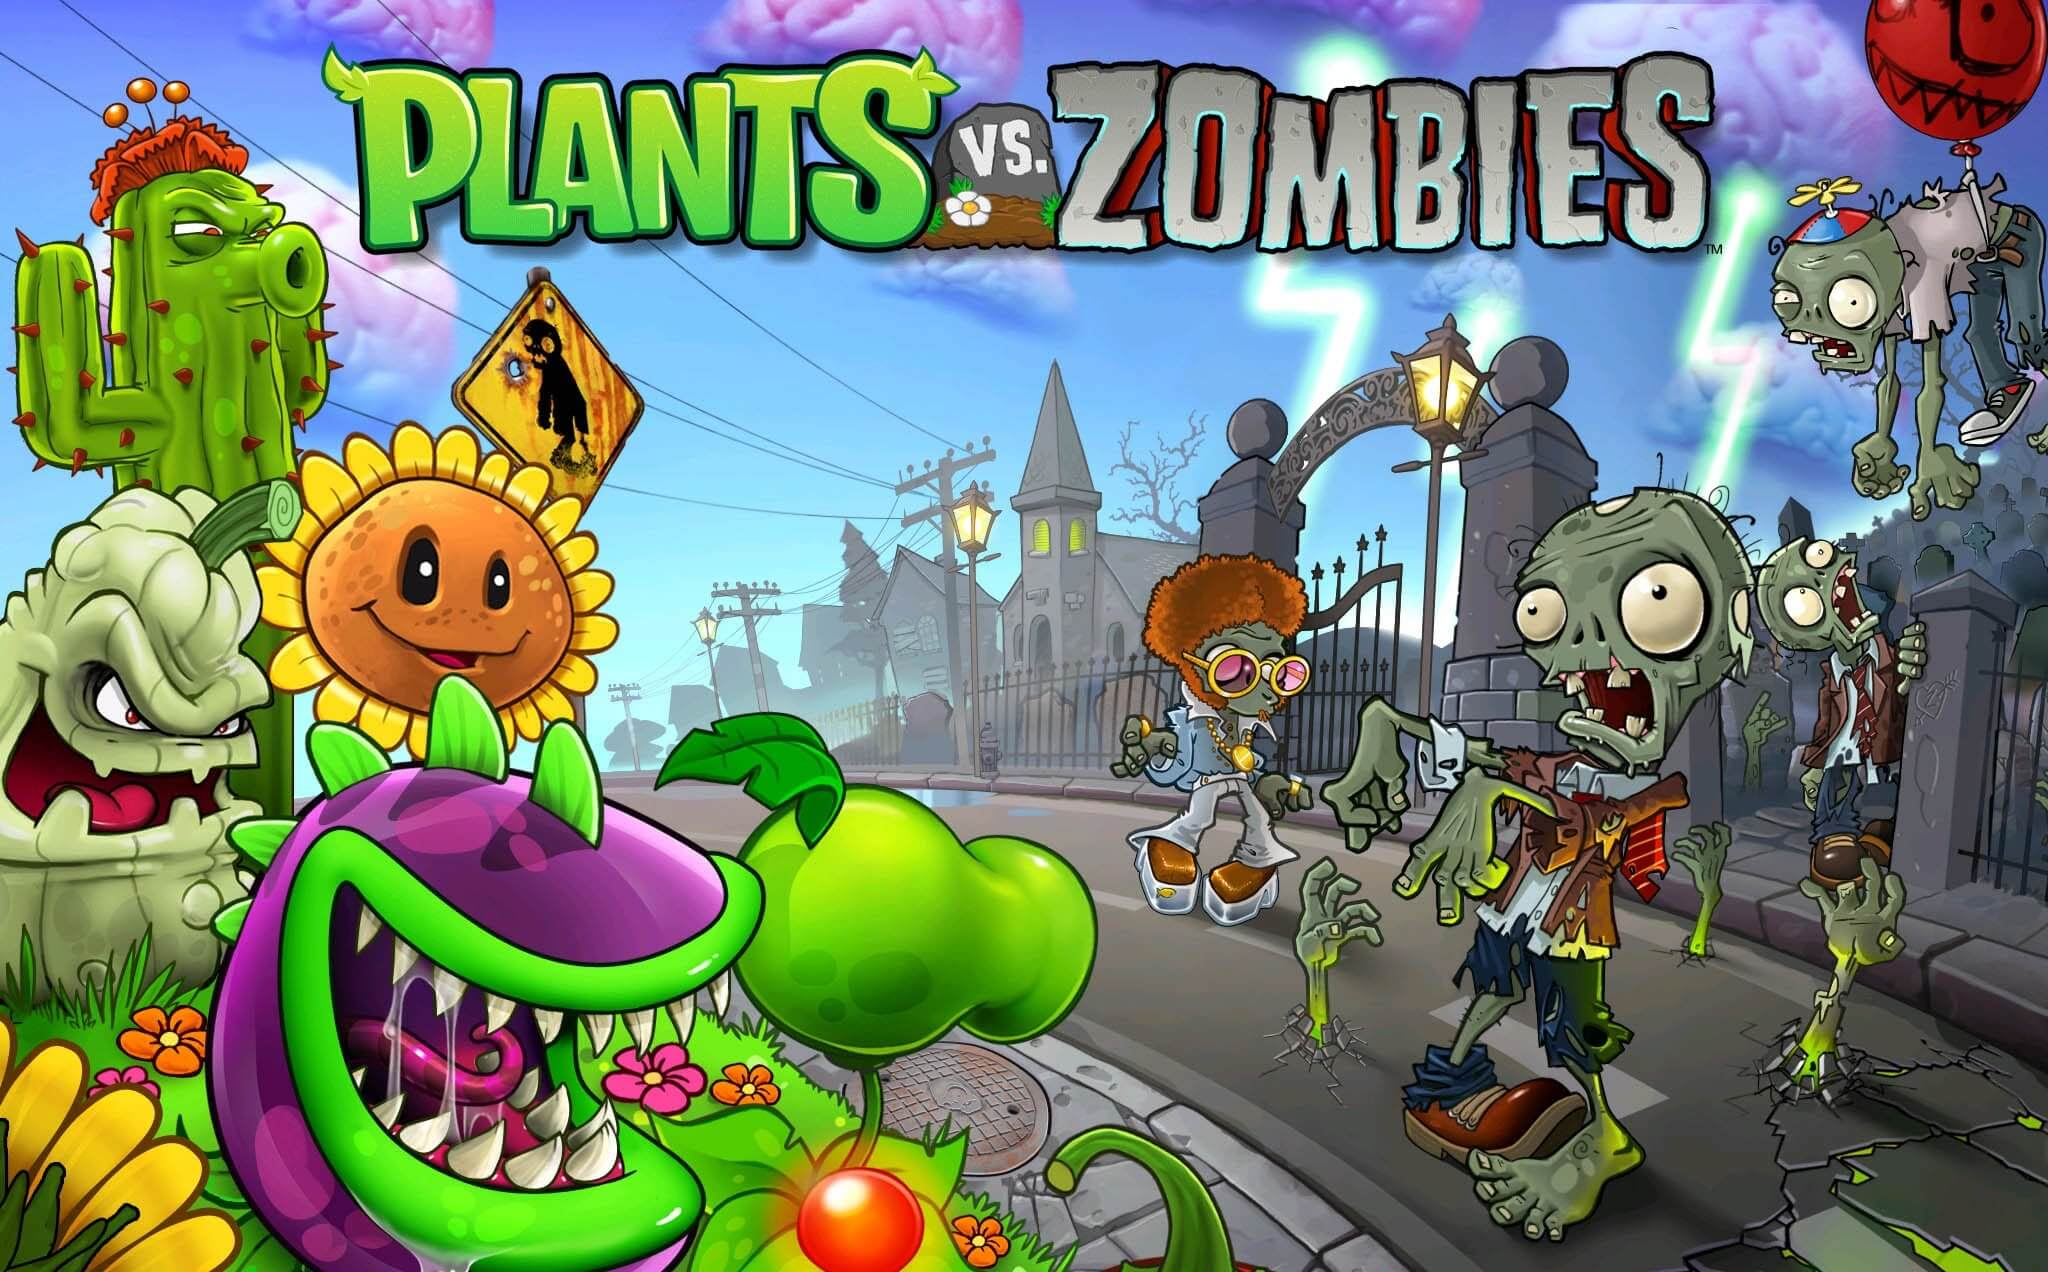 Plant vs zombie v1. 0. 7. 3467 +14 trainer | game trainers.